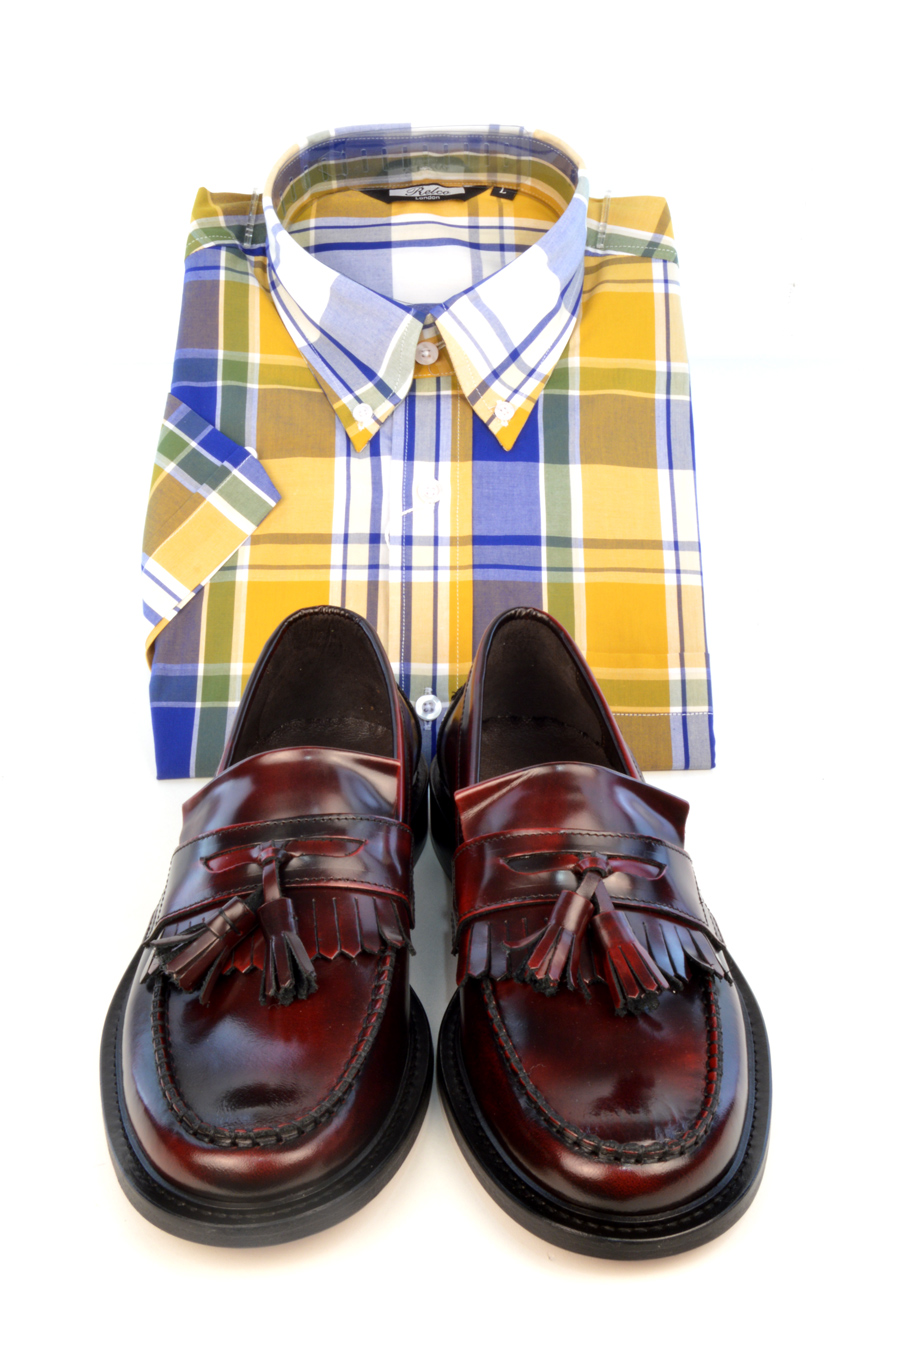 modshoes-oxblood-tassel-loafwers-with-ywllow-check-shirt